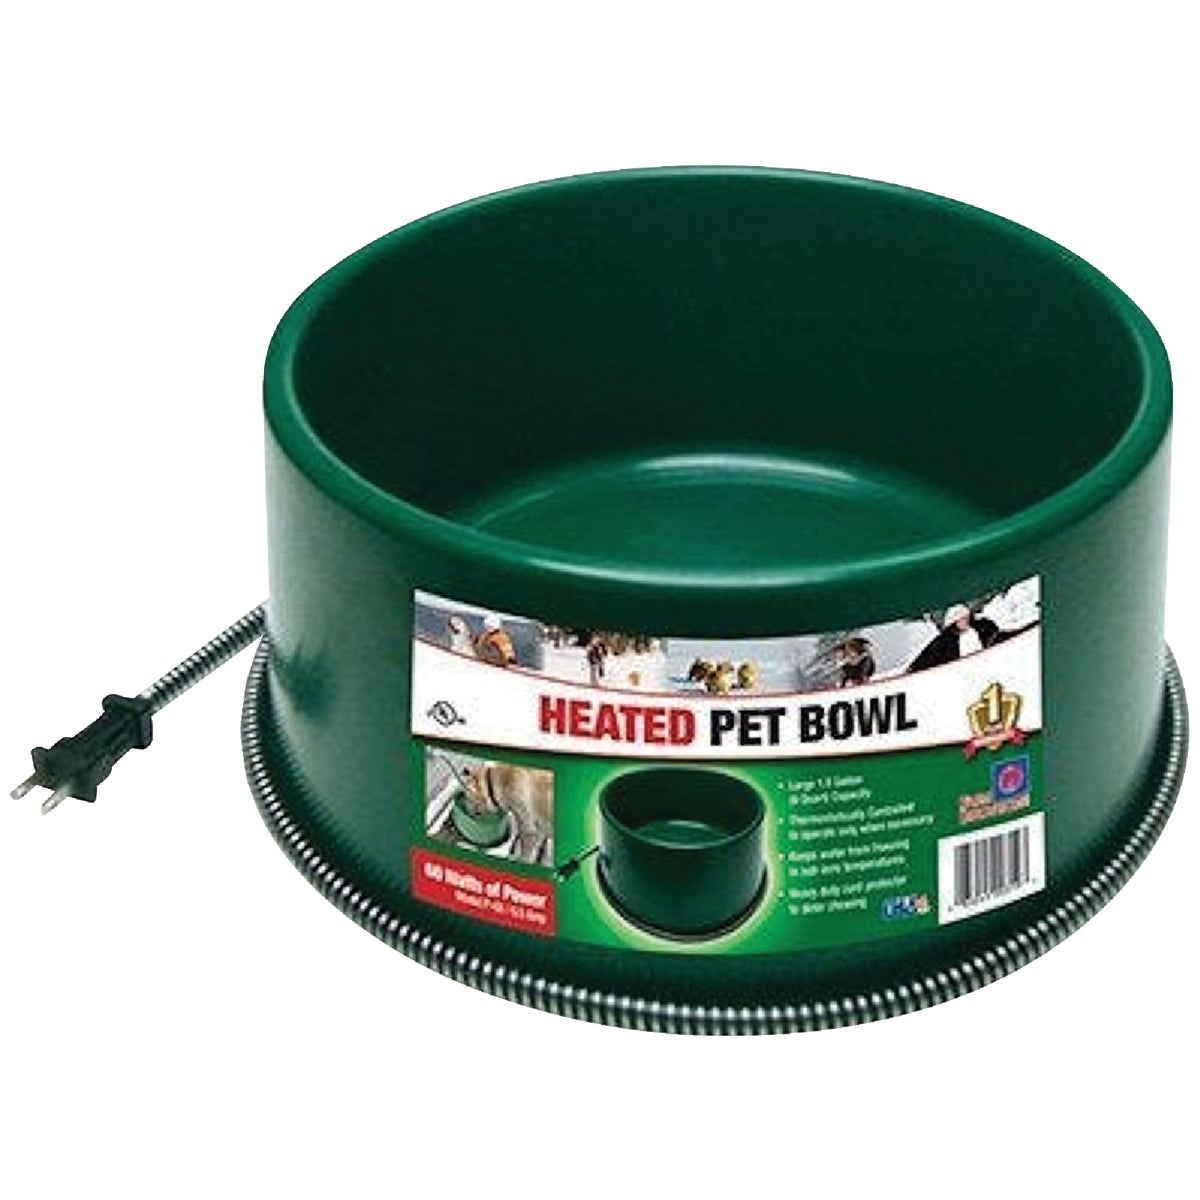 5QT HEATED PET BOWL